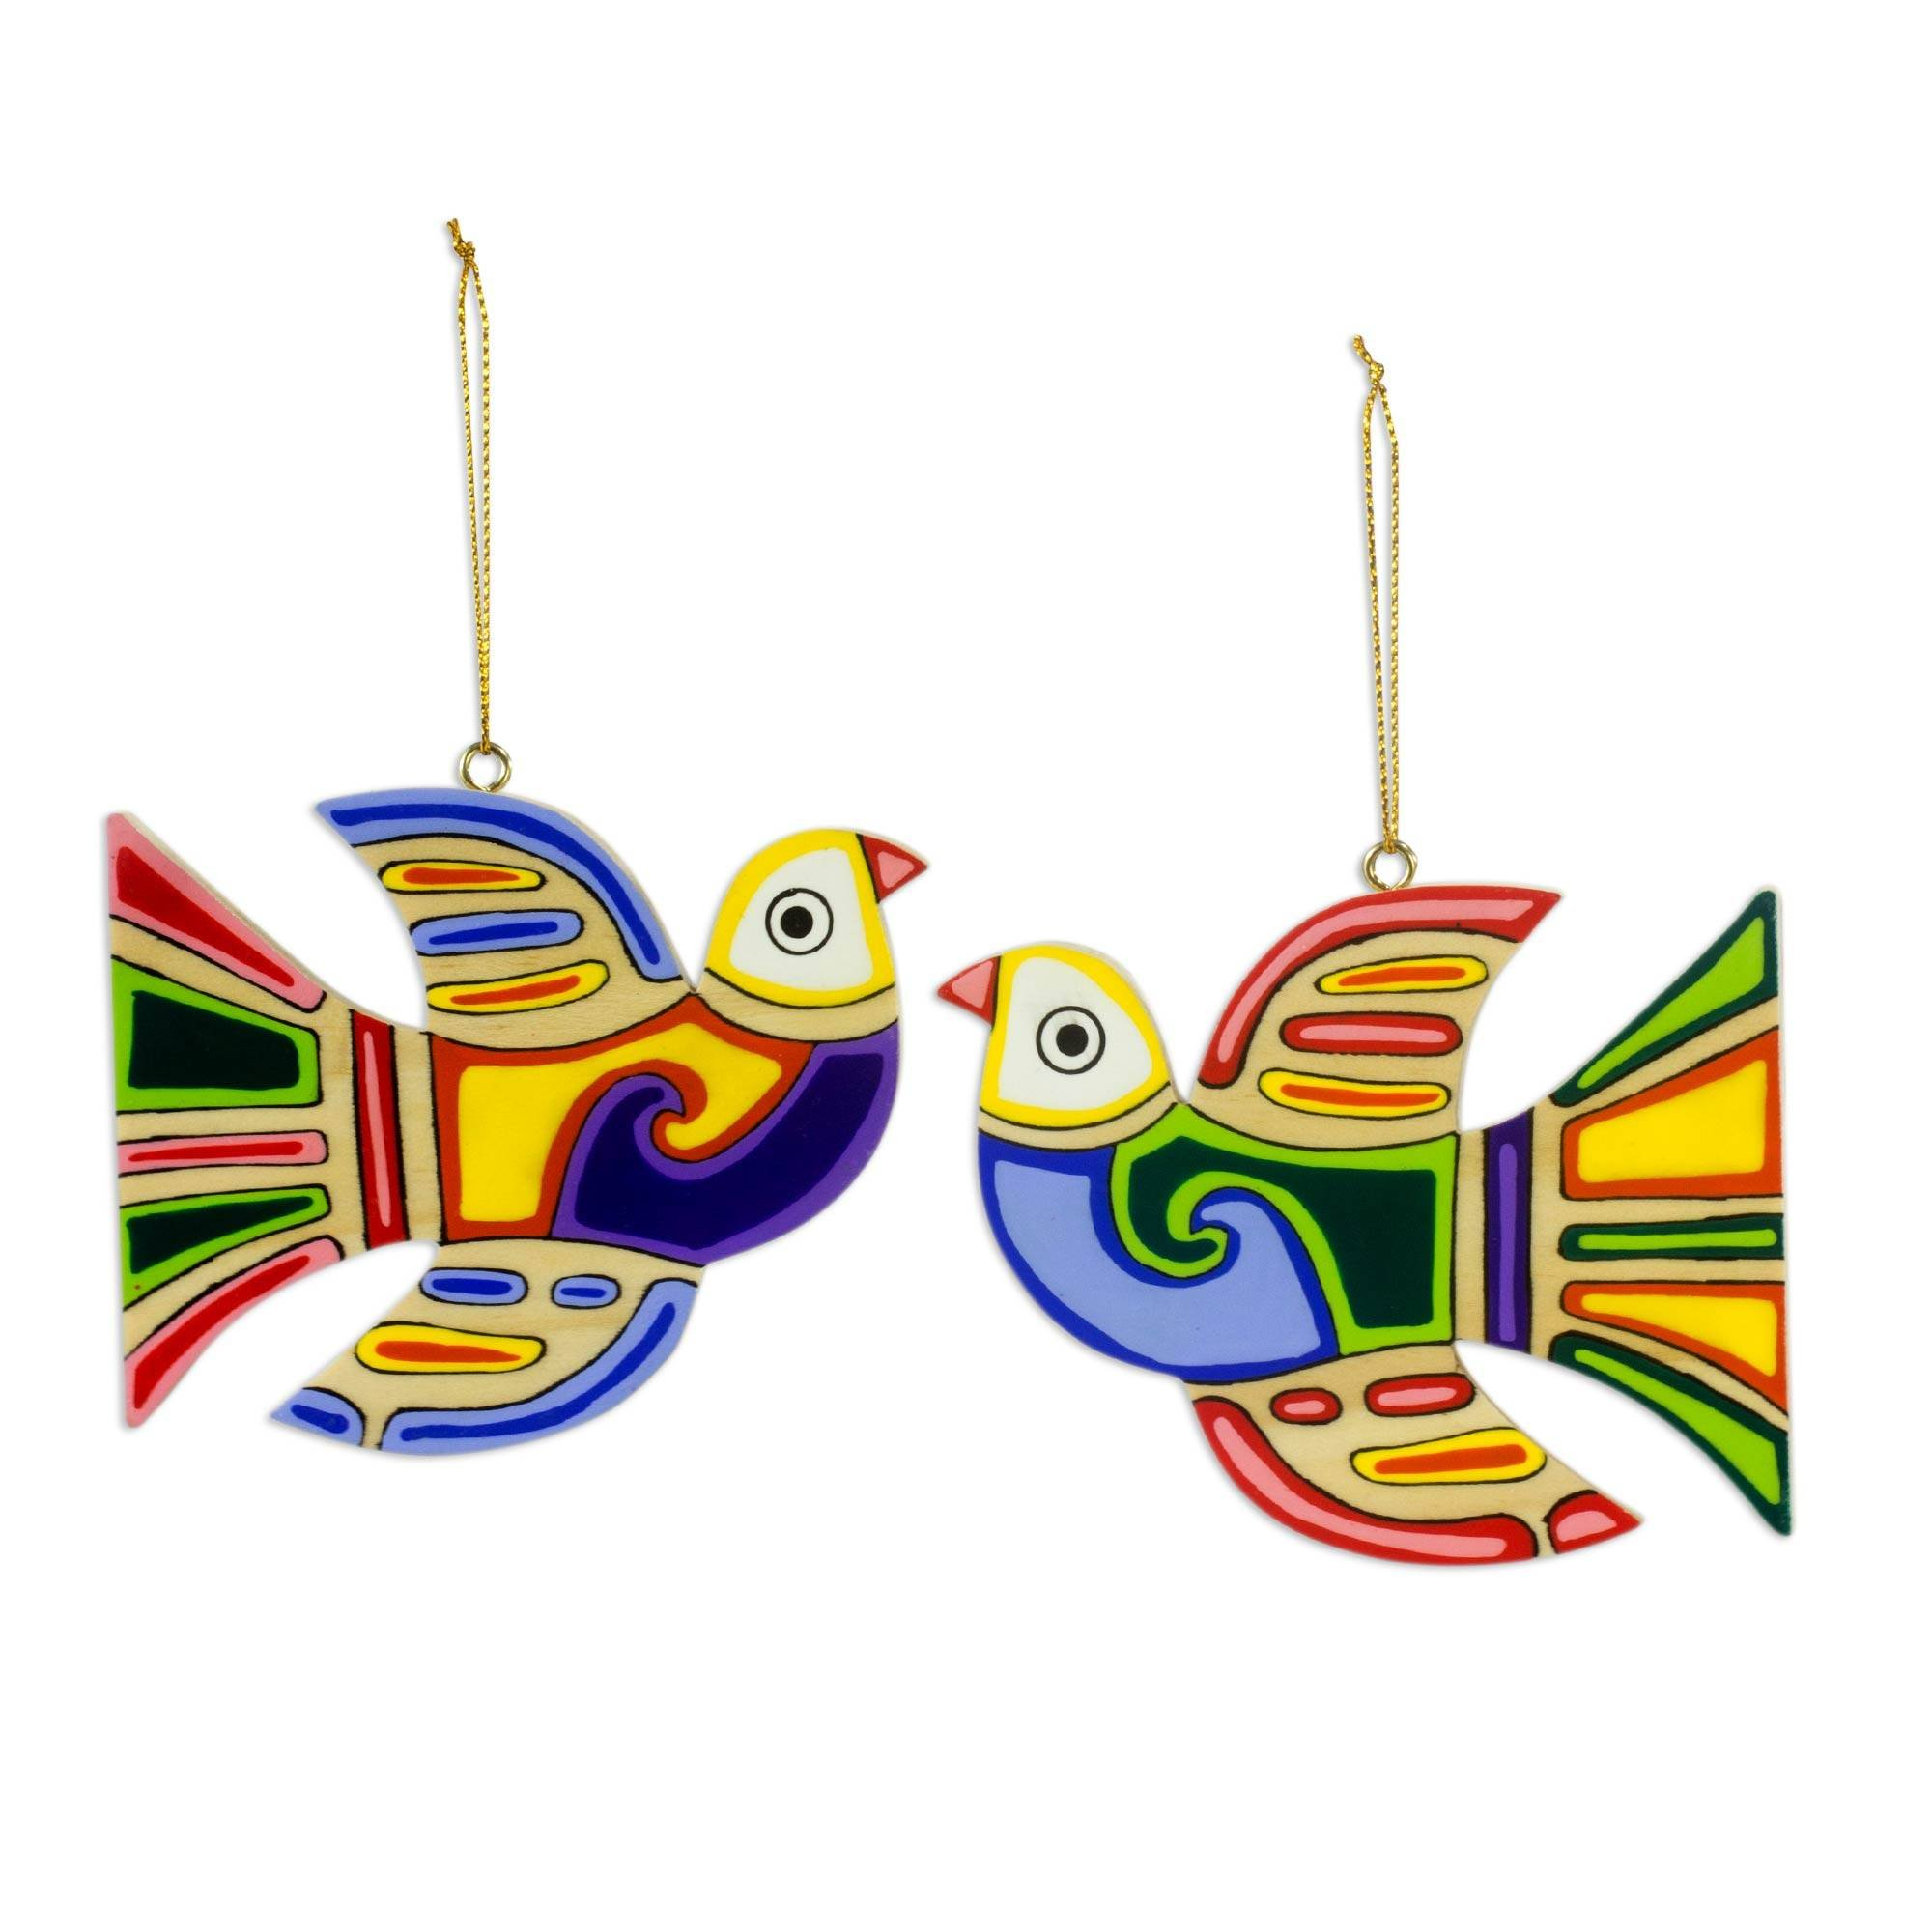 NOVICA Hand Painted Multi-Color Pinewood Christmas Holiday Ornaments, Skybird' (Set of 6), Artisan Made in Central America